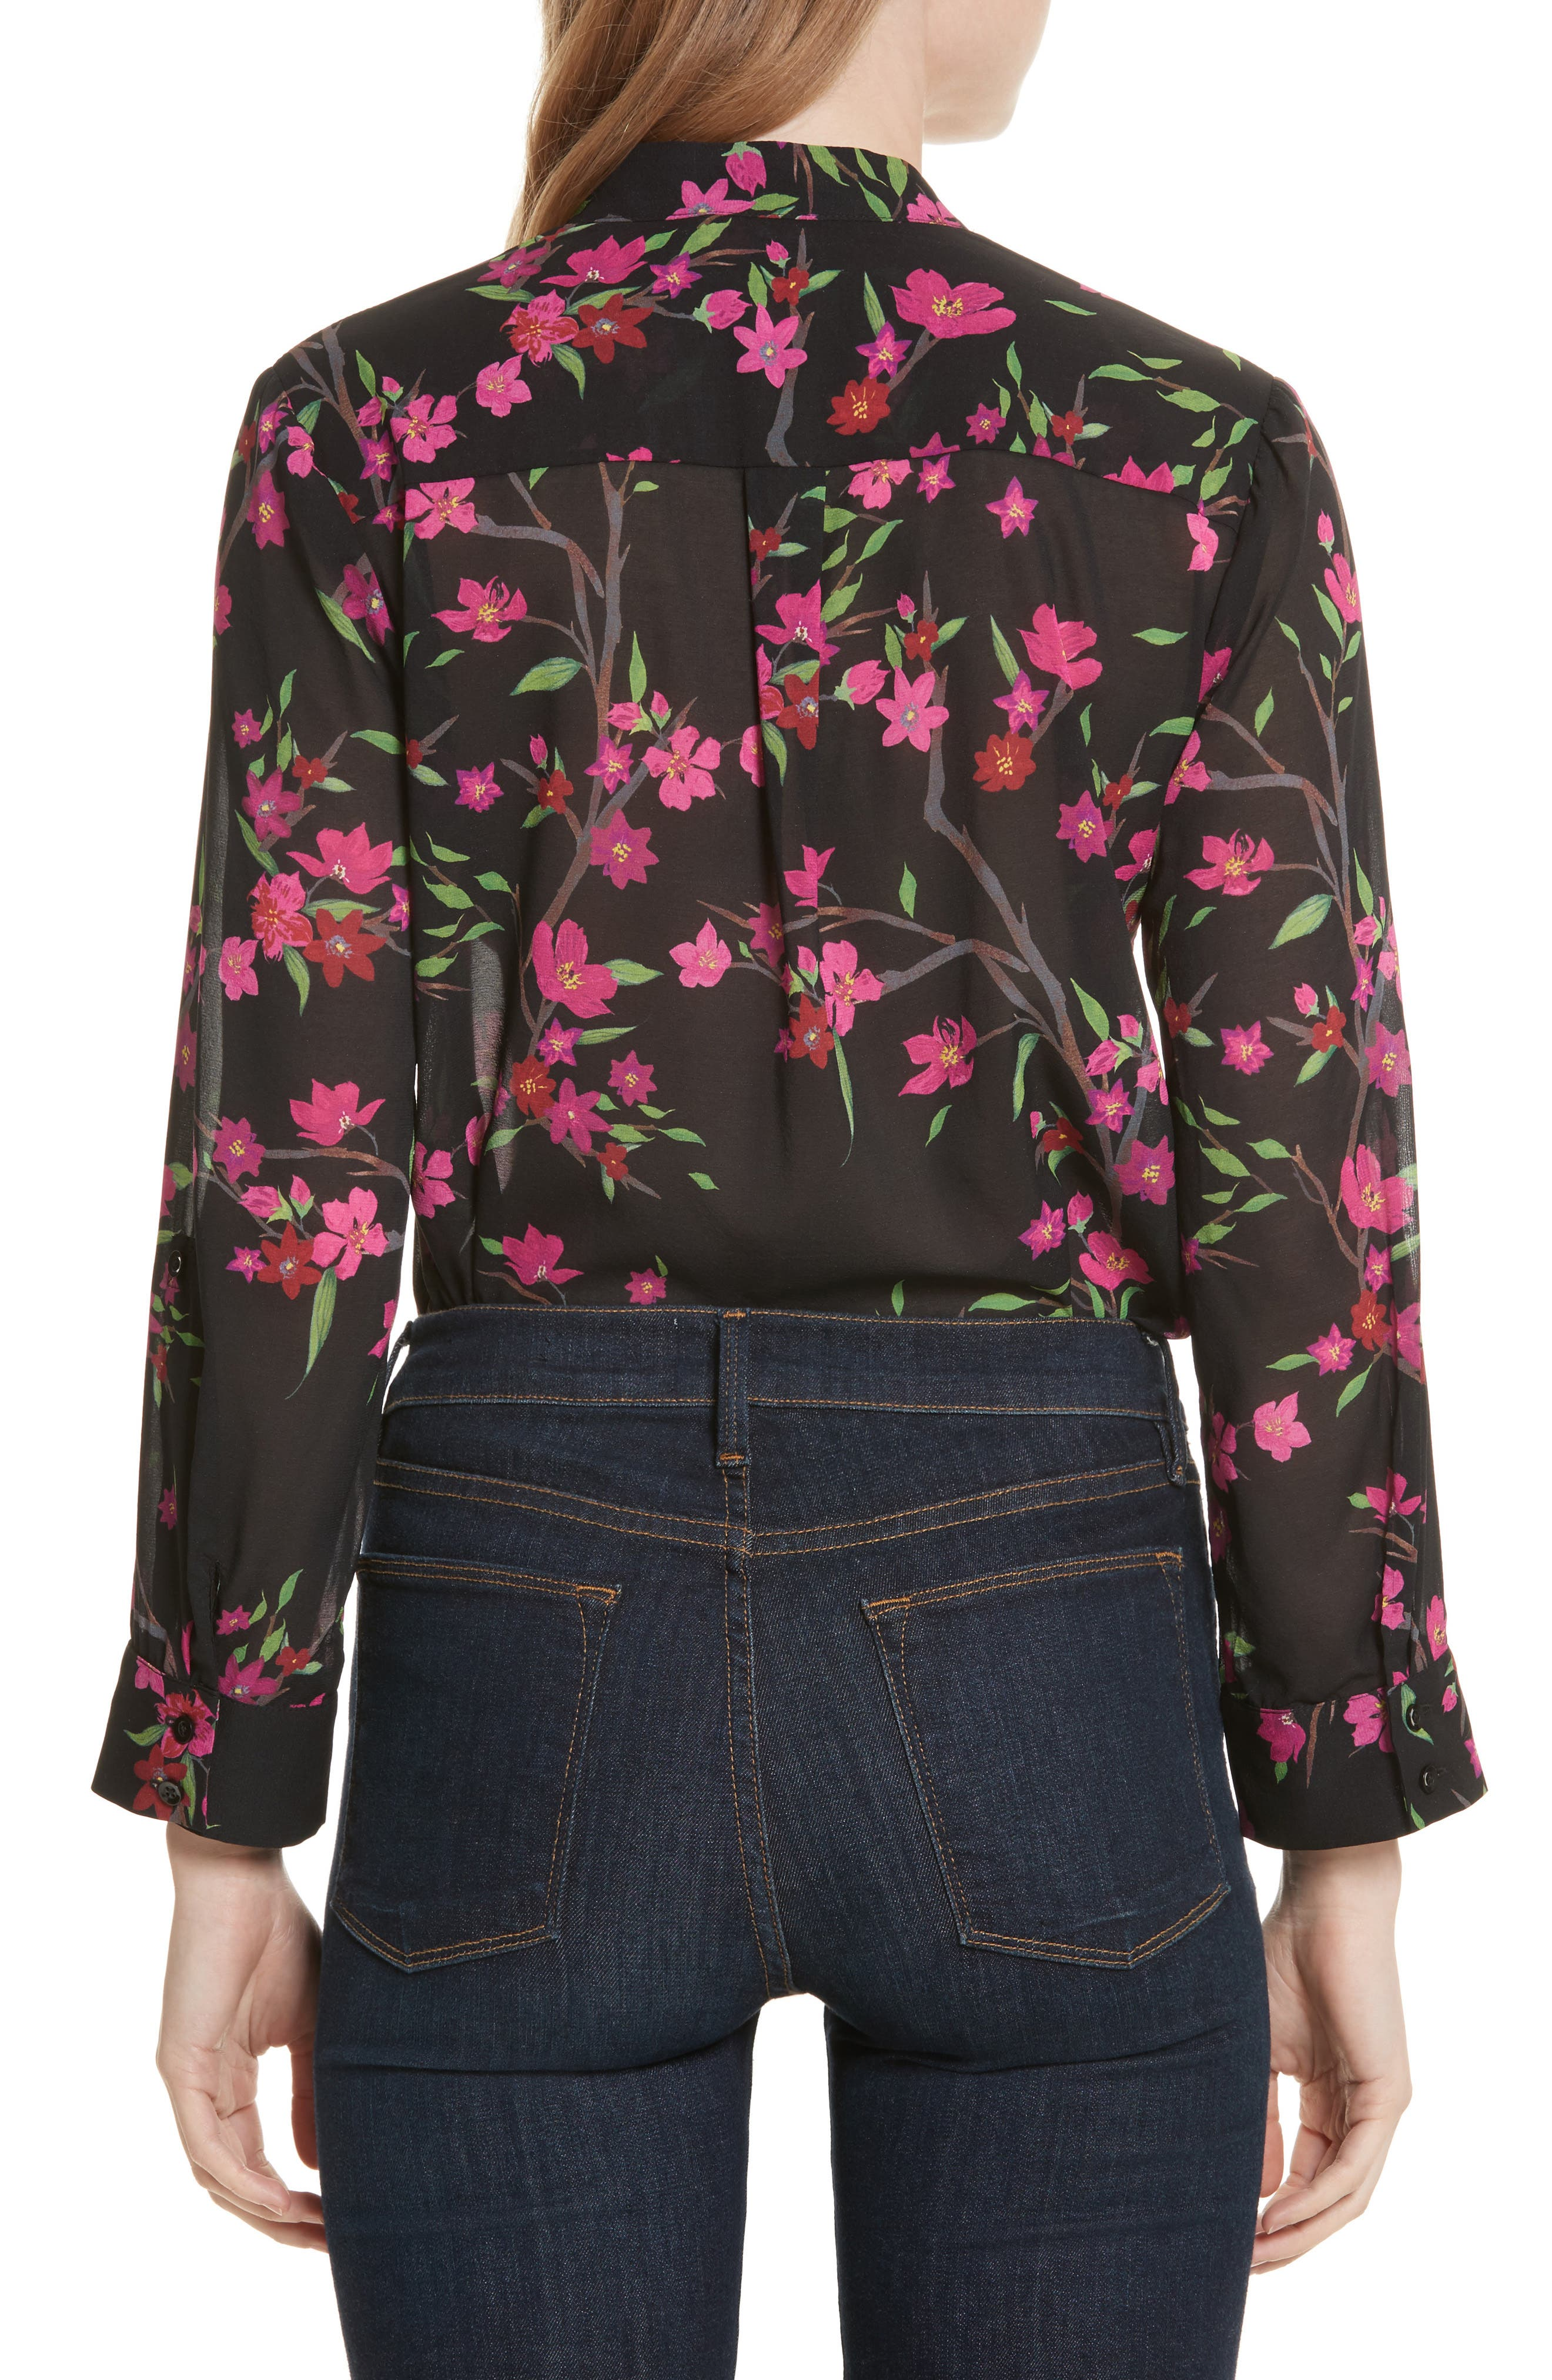 Eloise Mandarin Collar Blouse,                             Alternate thumbnail 3, color,                             Sakura Floral/ Black